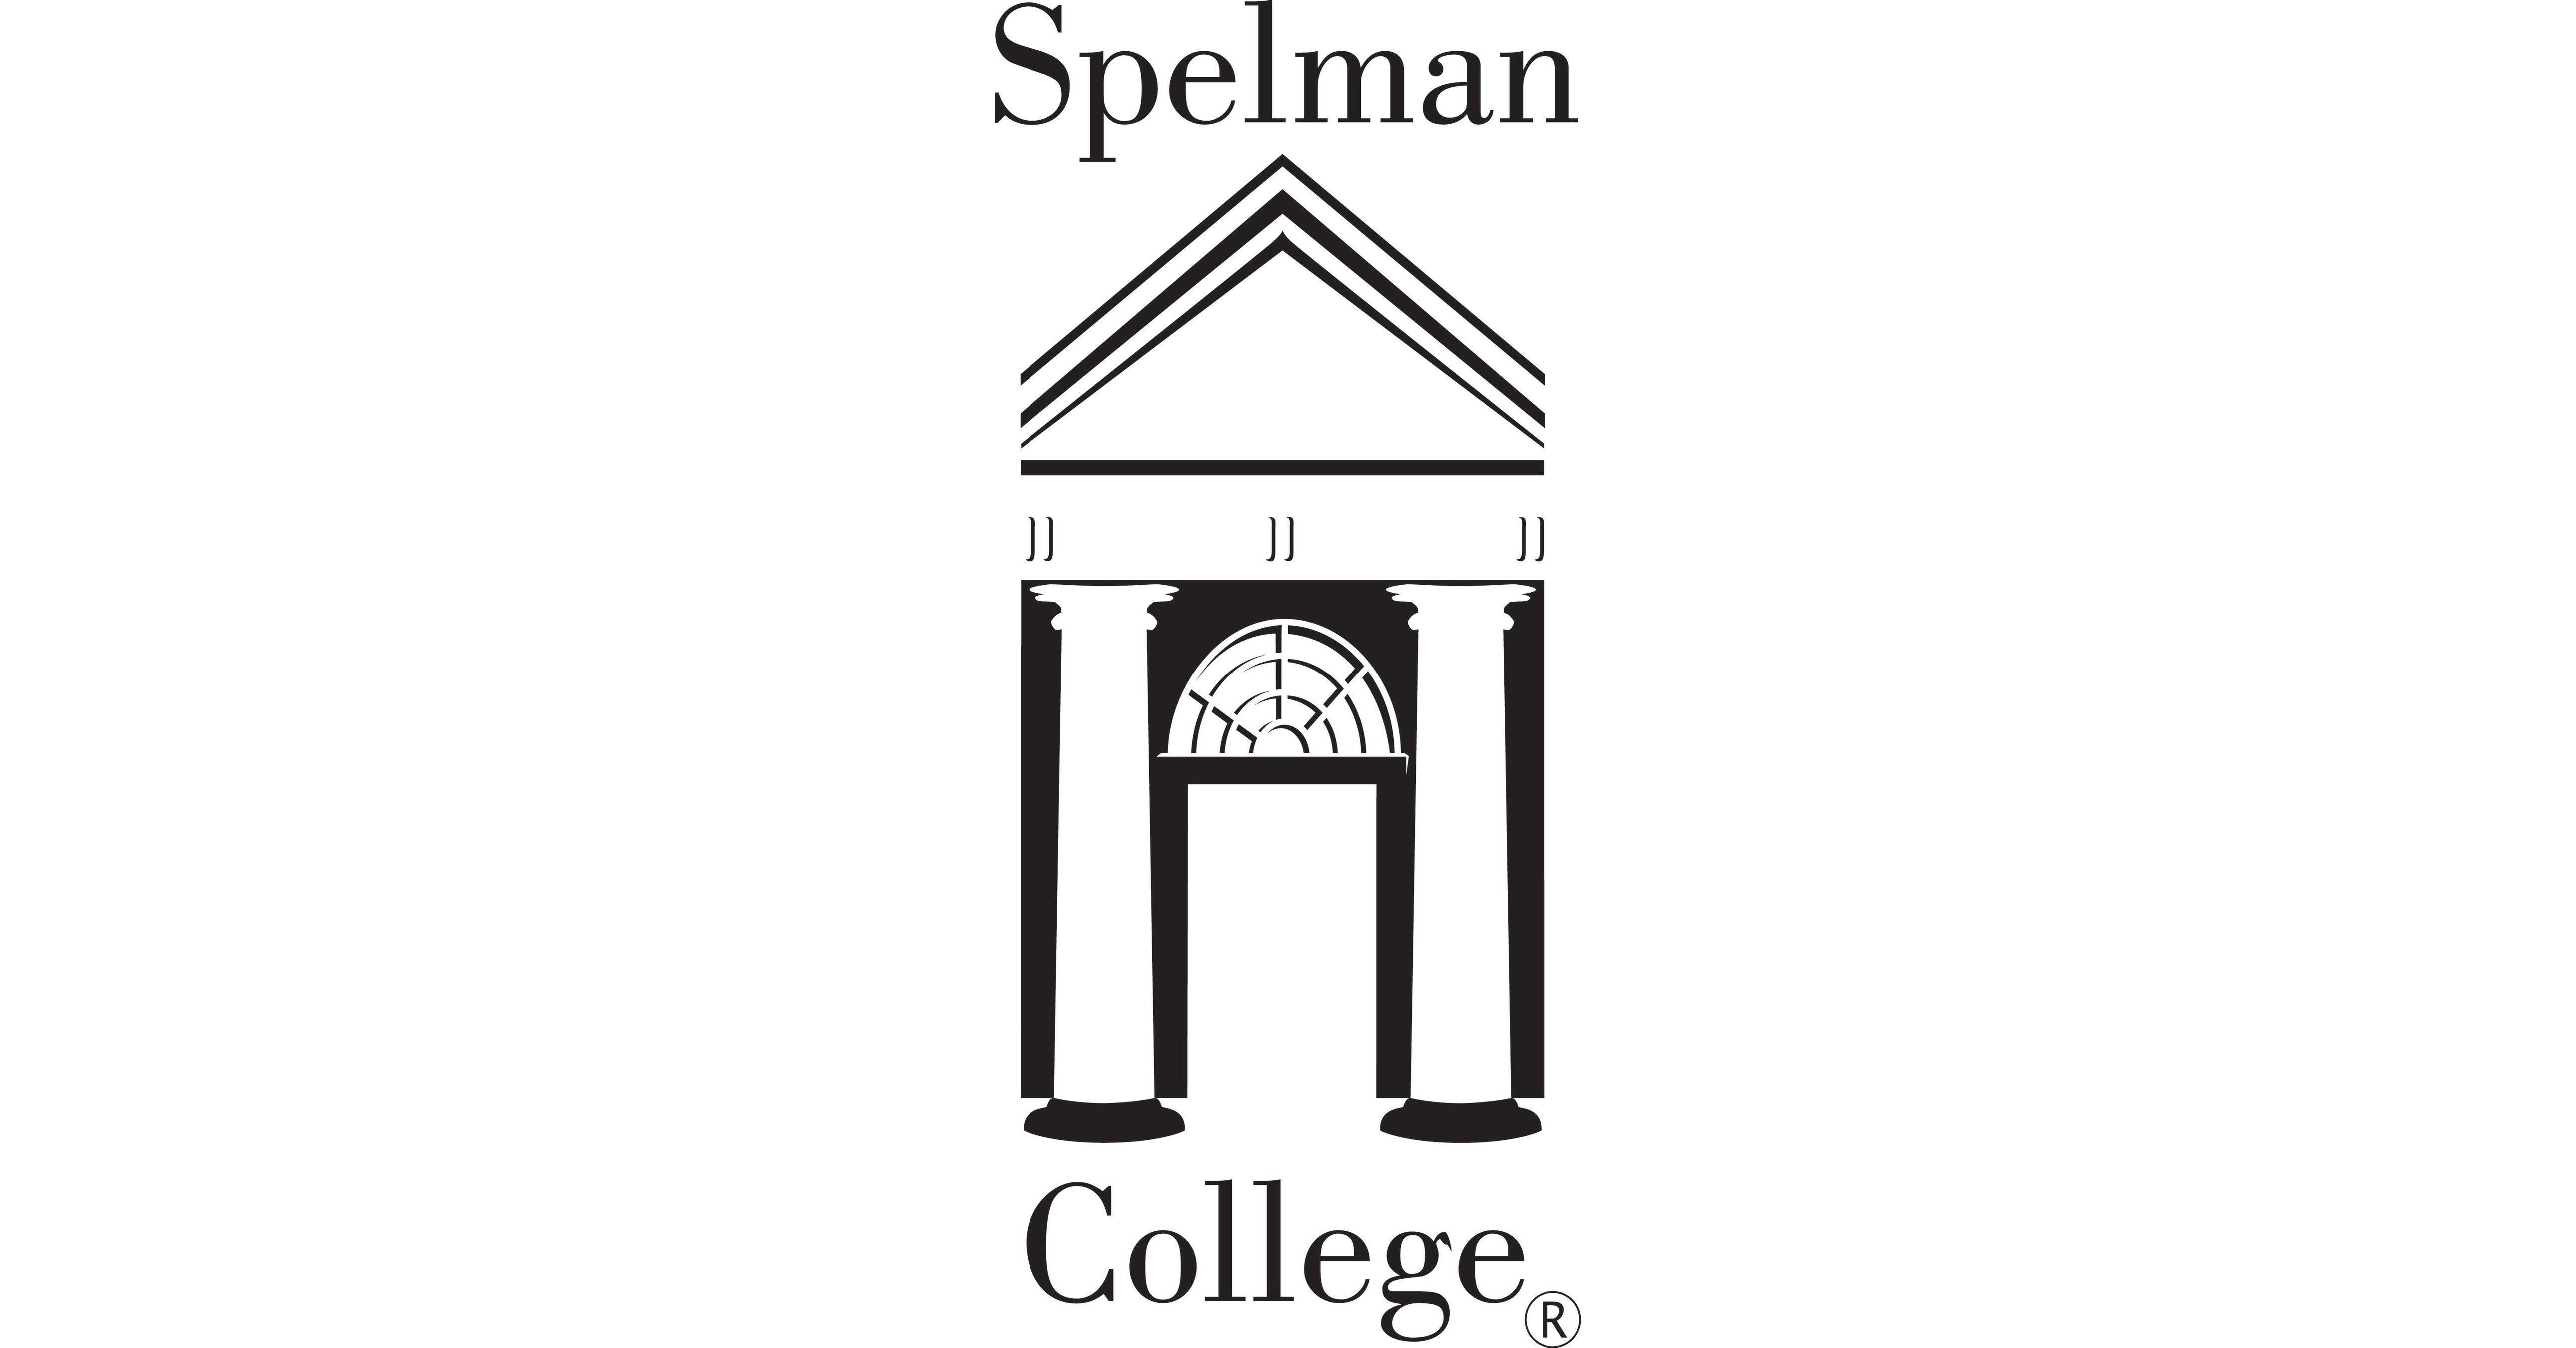 Spelman College Names Co-Valedictorians for Class of 2017